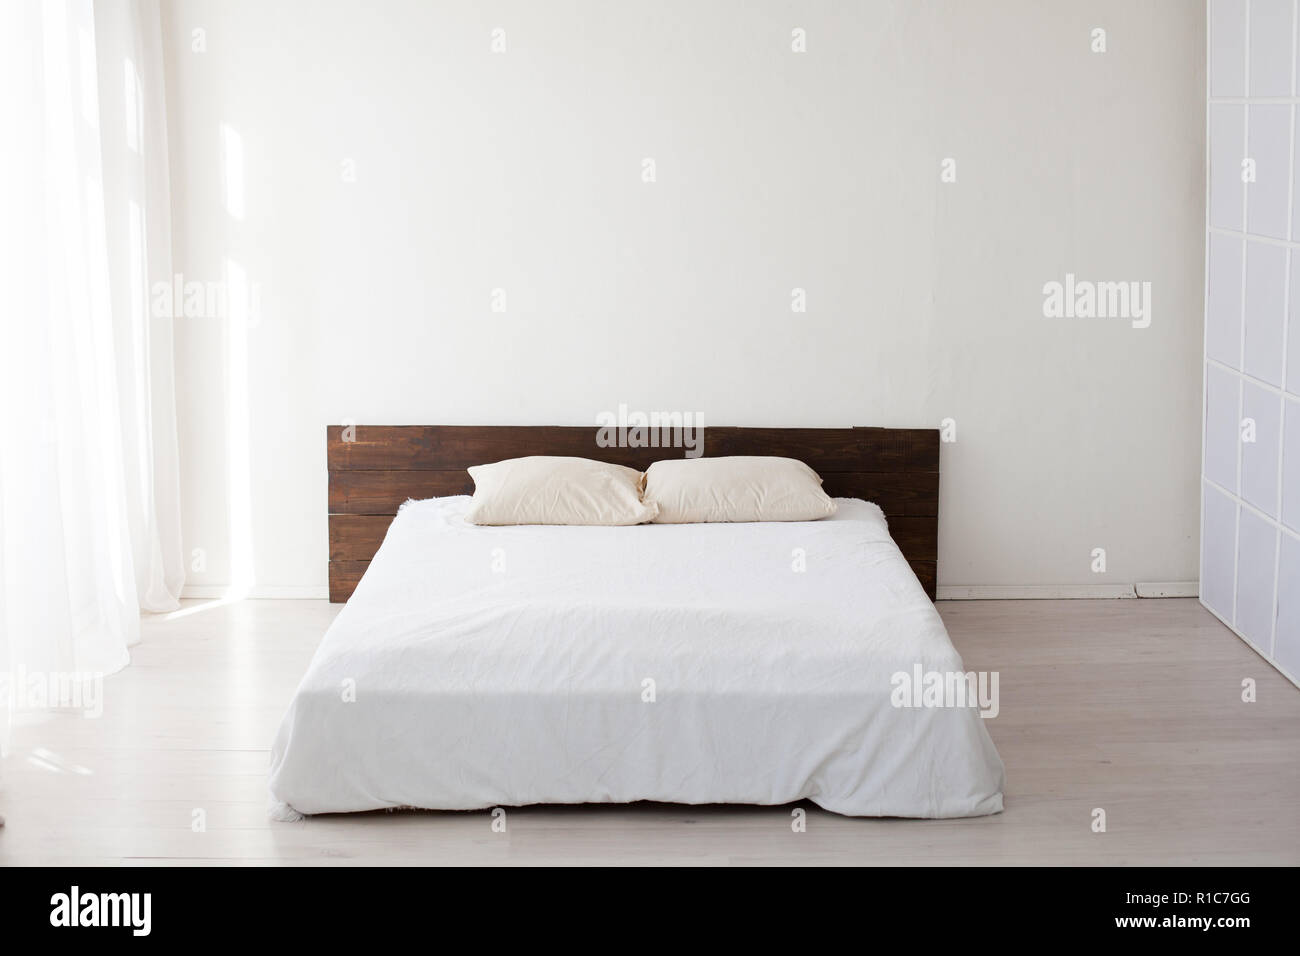 large bed in the Interior white bedrooms Stock Photo: 224618816 - Alamy